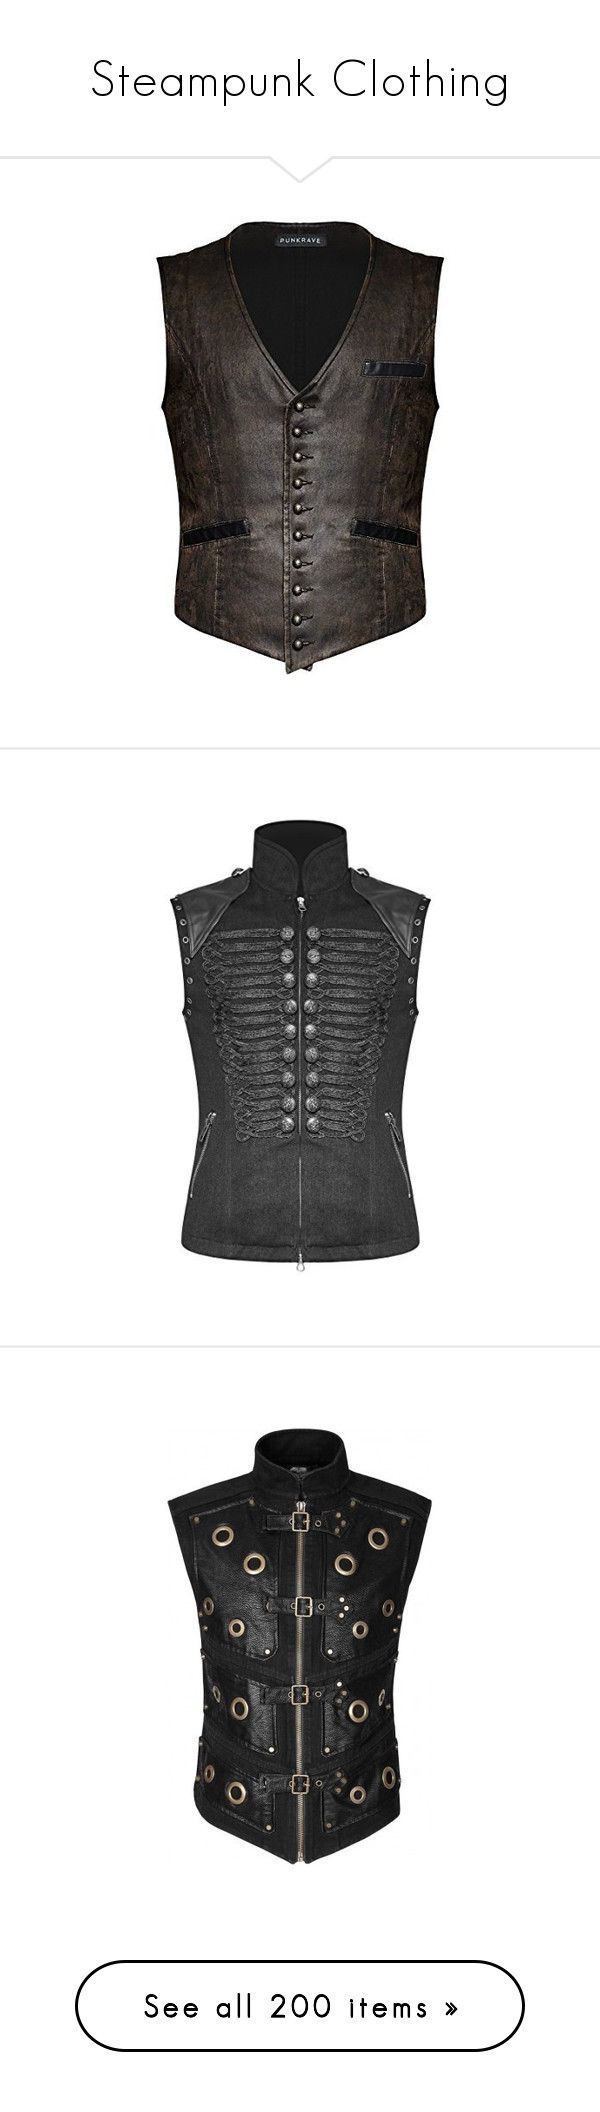 """Steampunk Clothing"" by selene-cinzia ❤ liked on Polyvore featuring men's fashion, men's clothing, mens clothing, steampunk mens clothing, gothic mens clothing, vintage mens clothing, outerwear, vests, goth vest and punk rock vest"